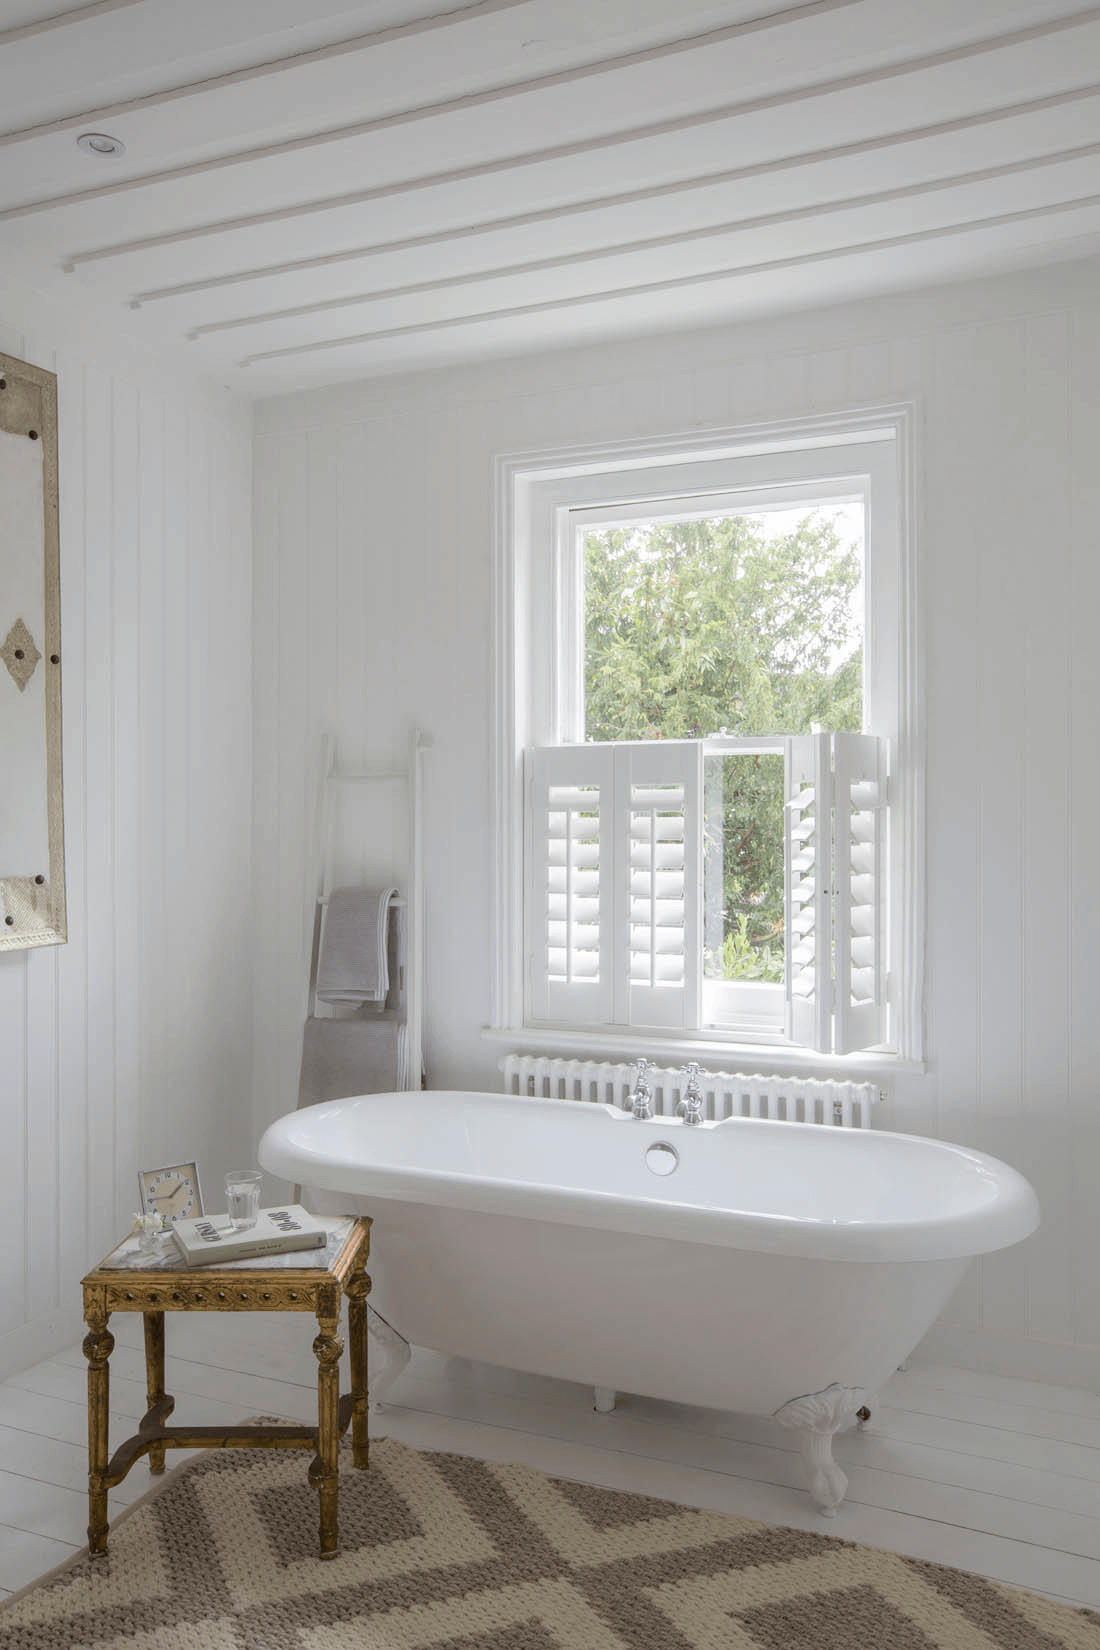 Half Window Indoor Shutters For Bathroom Window Shutters Indoor